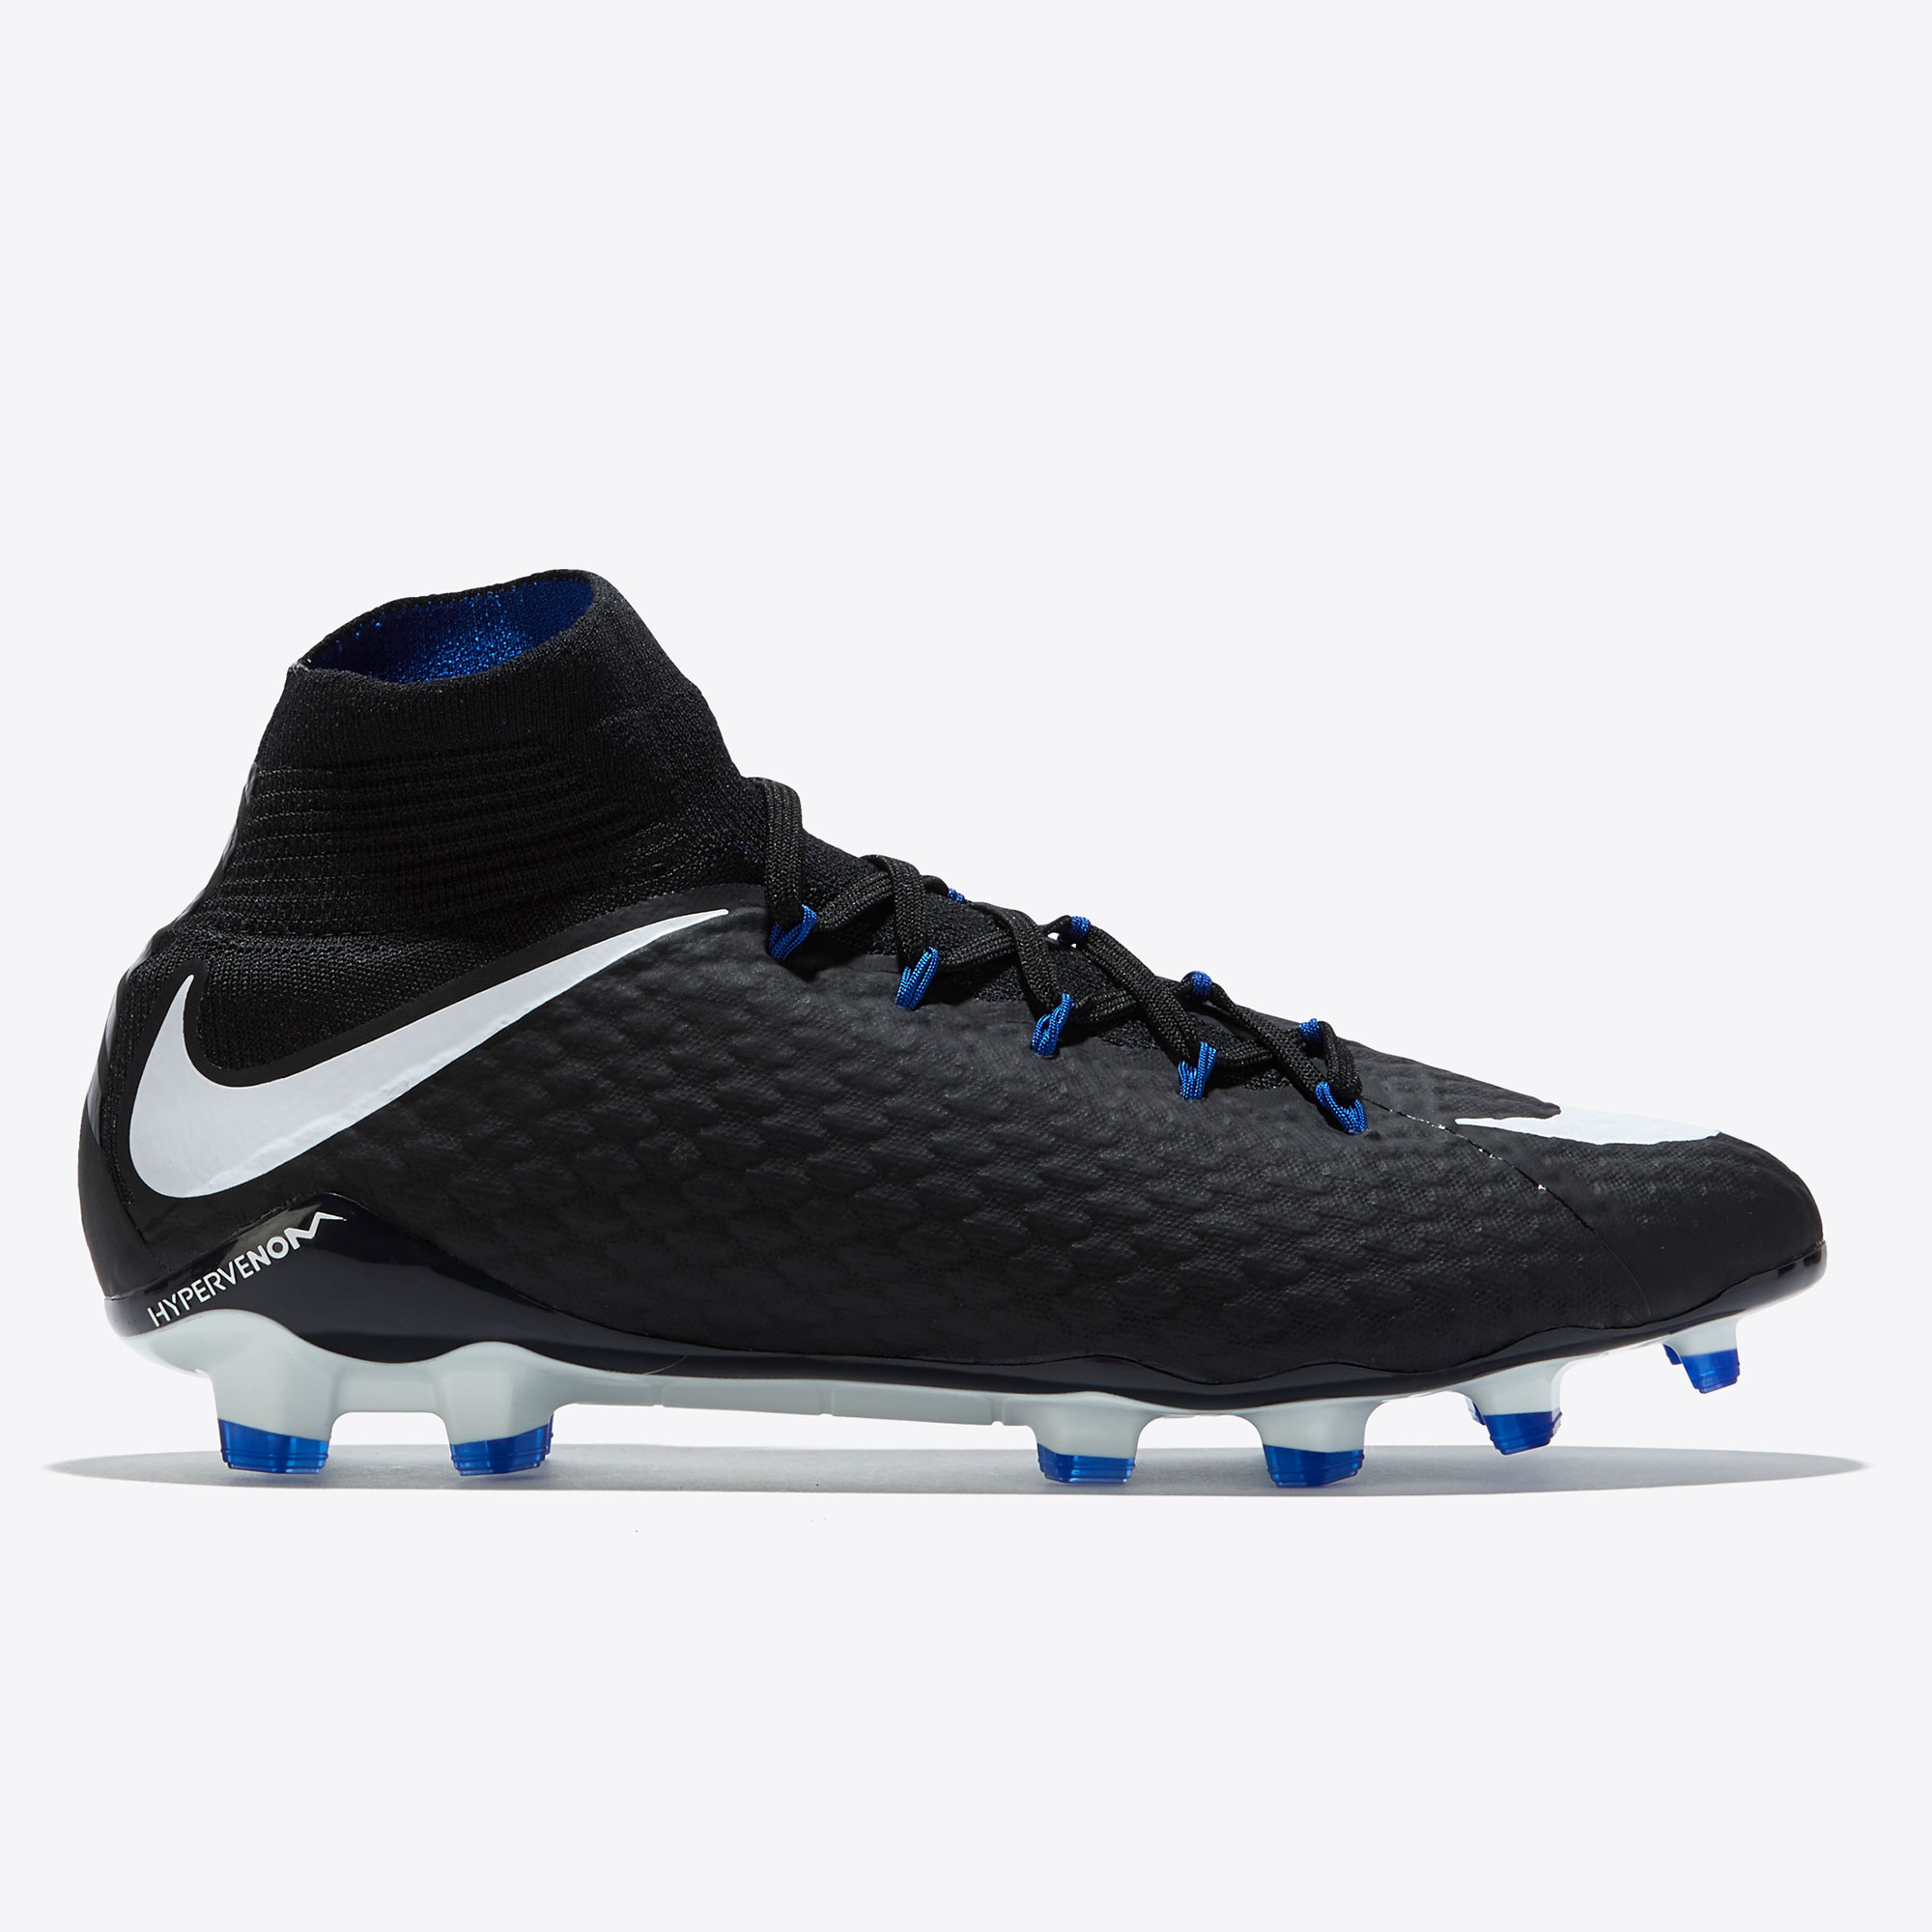 Nike Hypervenom Phatal III Dynamic Fit Firm Ground Football Boots - Bl